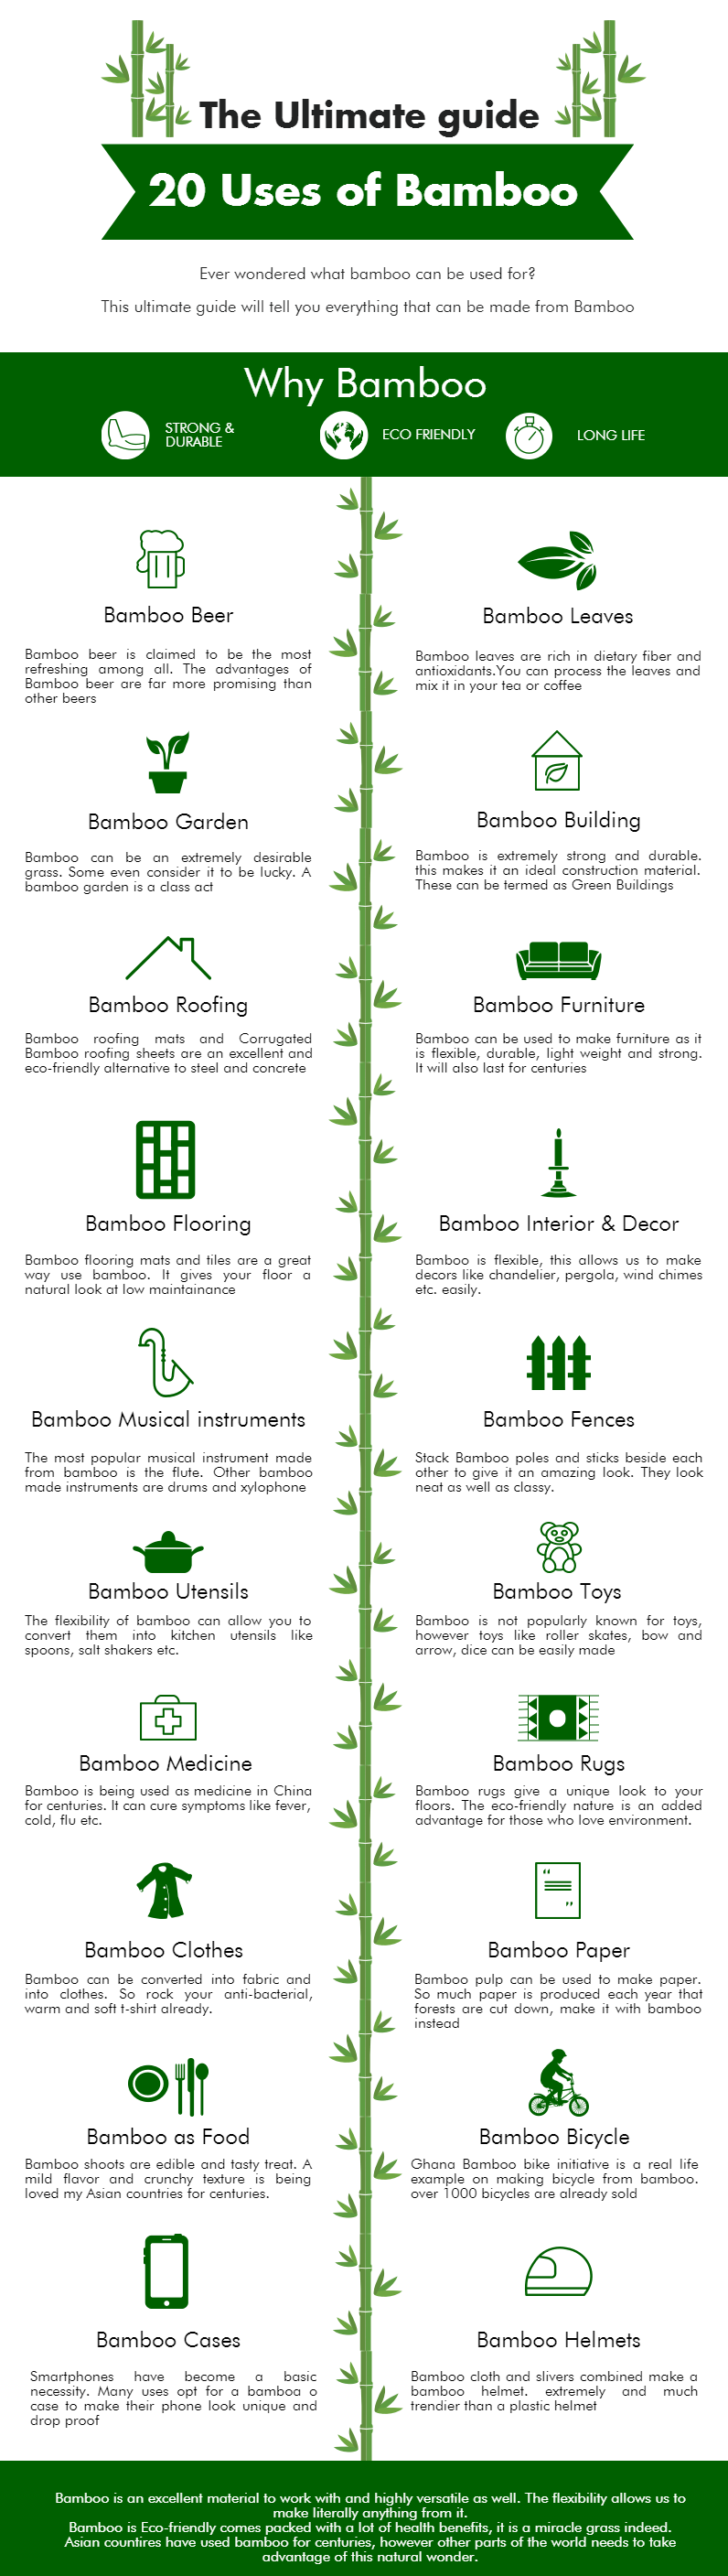 Uses of Bamboo Infographic by Bamboooz